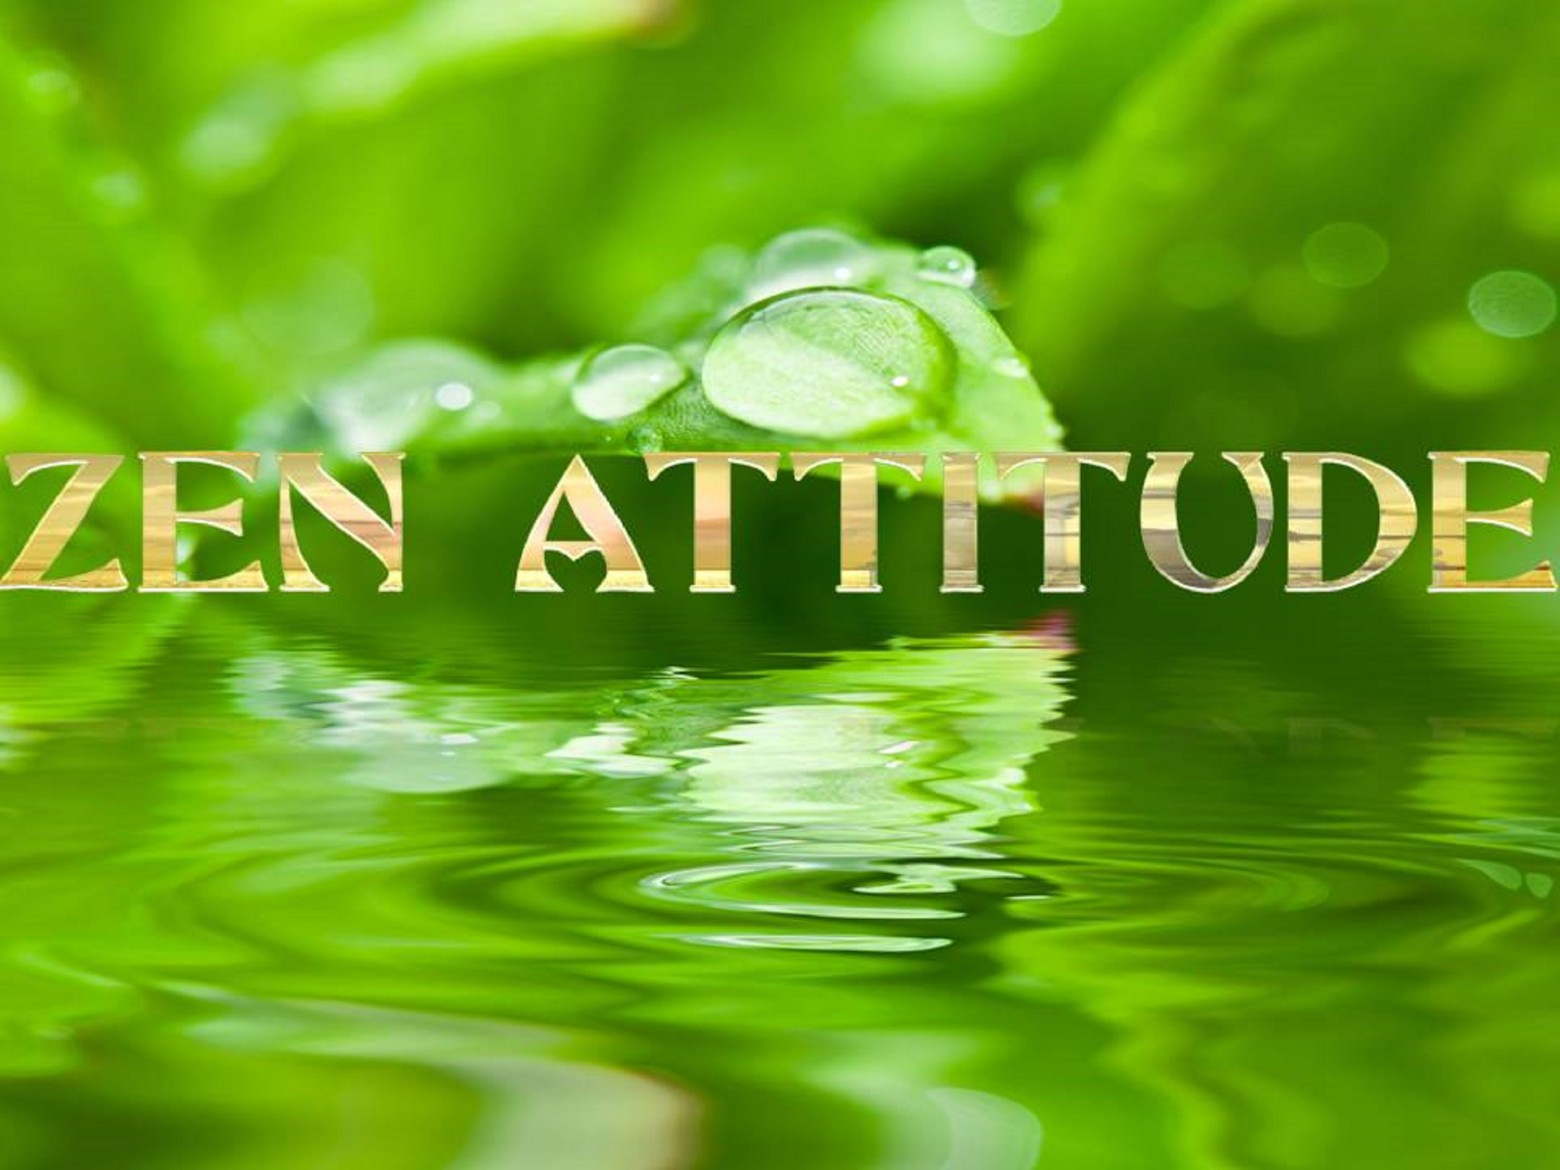 Zen attitude backround fond arri re plan images for Fond ecran gratuit zen